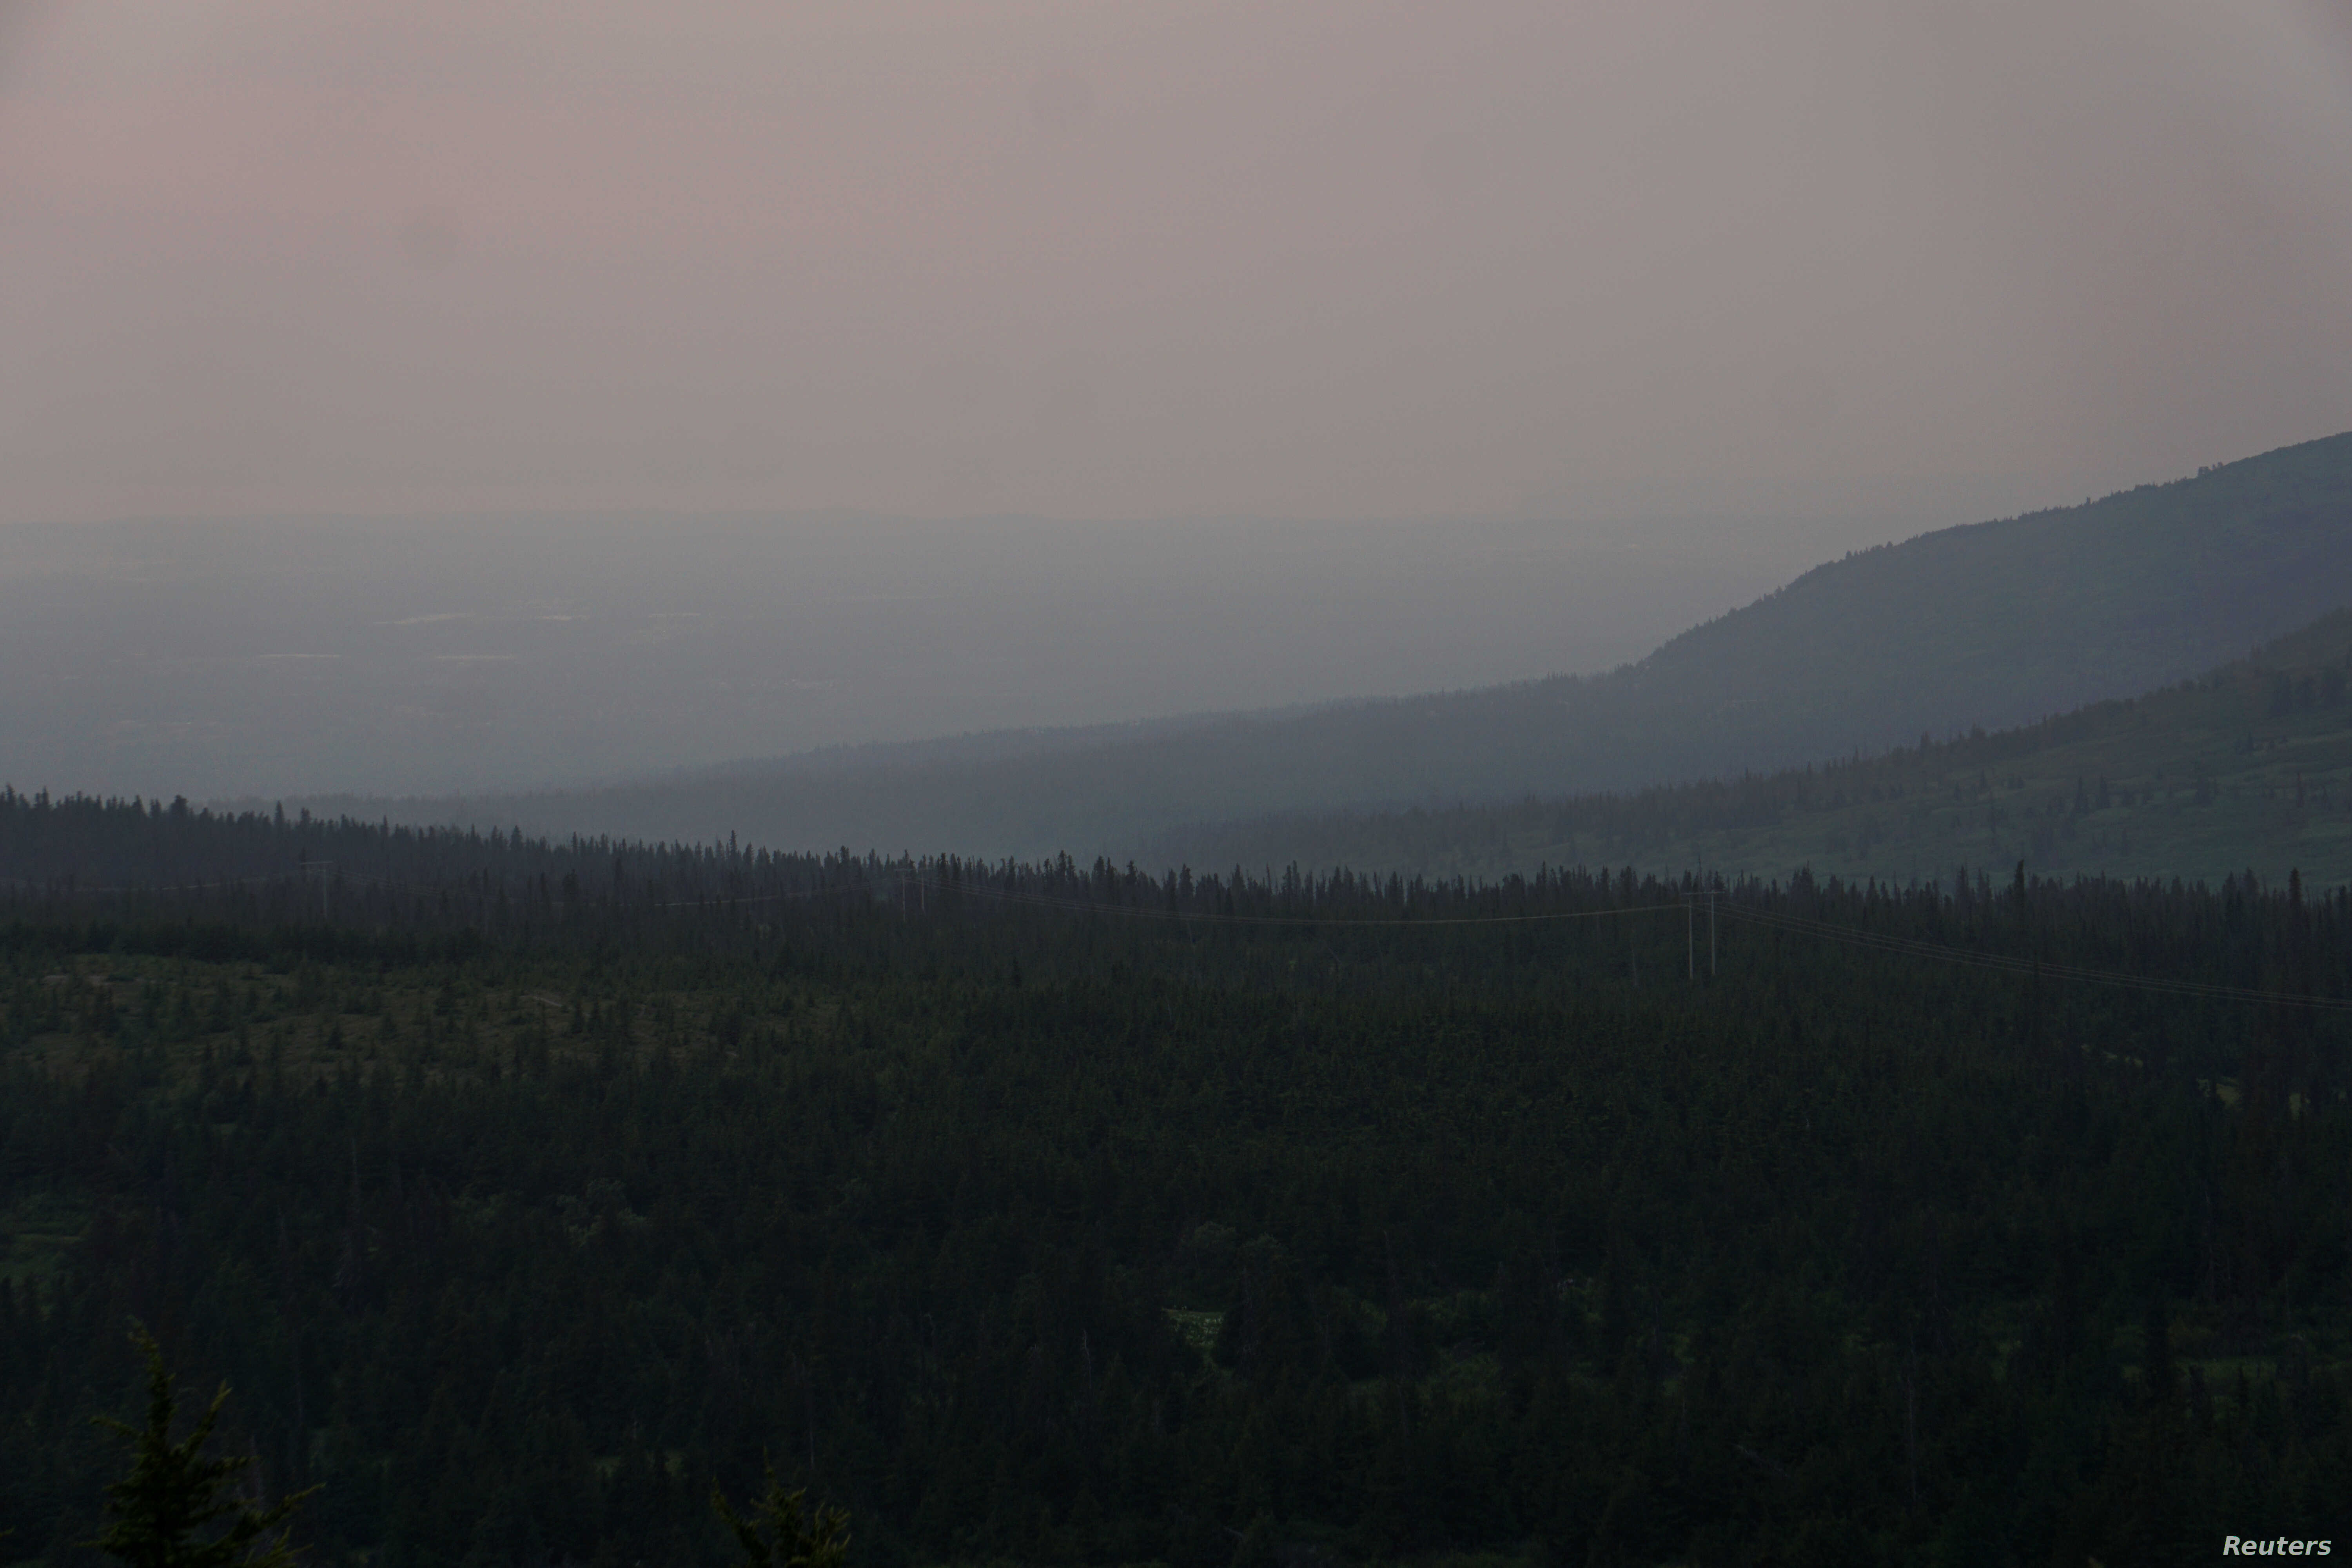 A general view of the skyline obscured by smoke taken from the Glen Alps trailhead of Chugach State Park in Anchorage, Alaska, June 29, 2019.